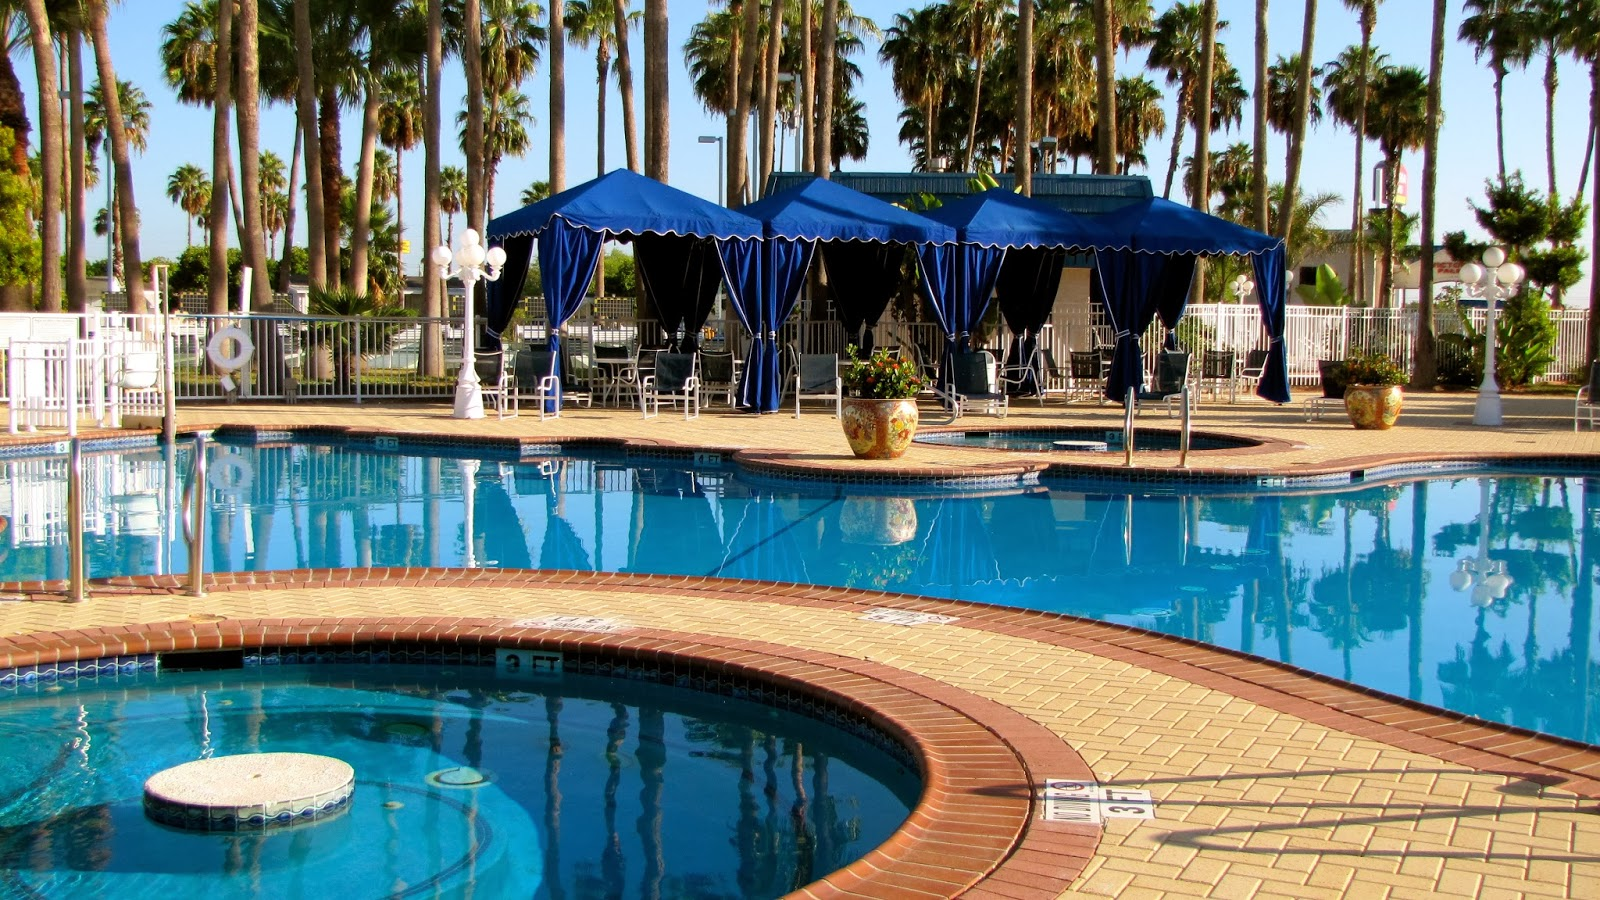 Passport America Site Seers Victoria Palms Rv Resort An